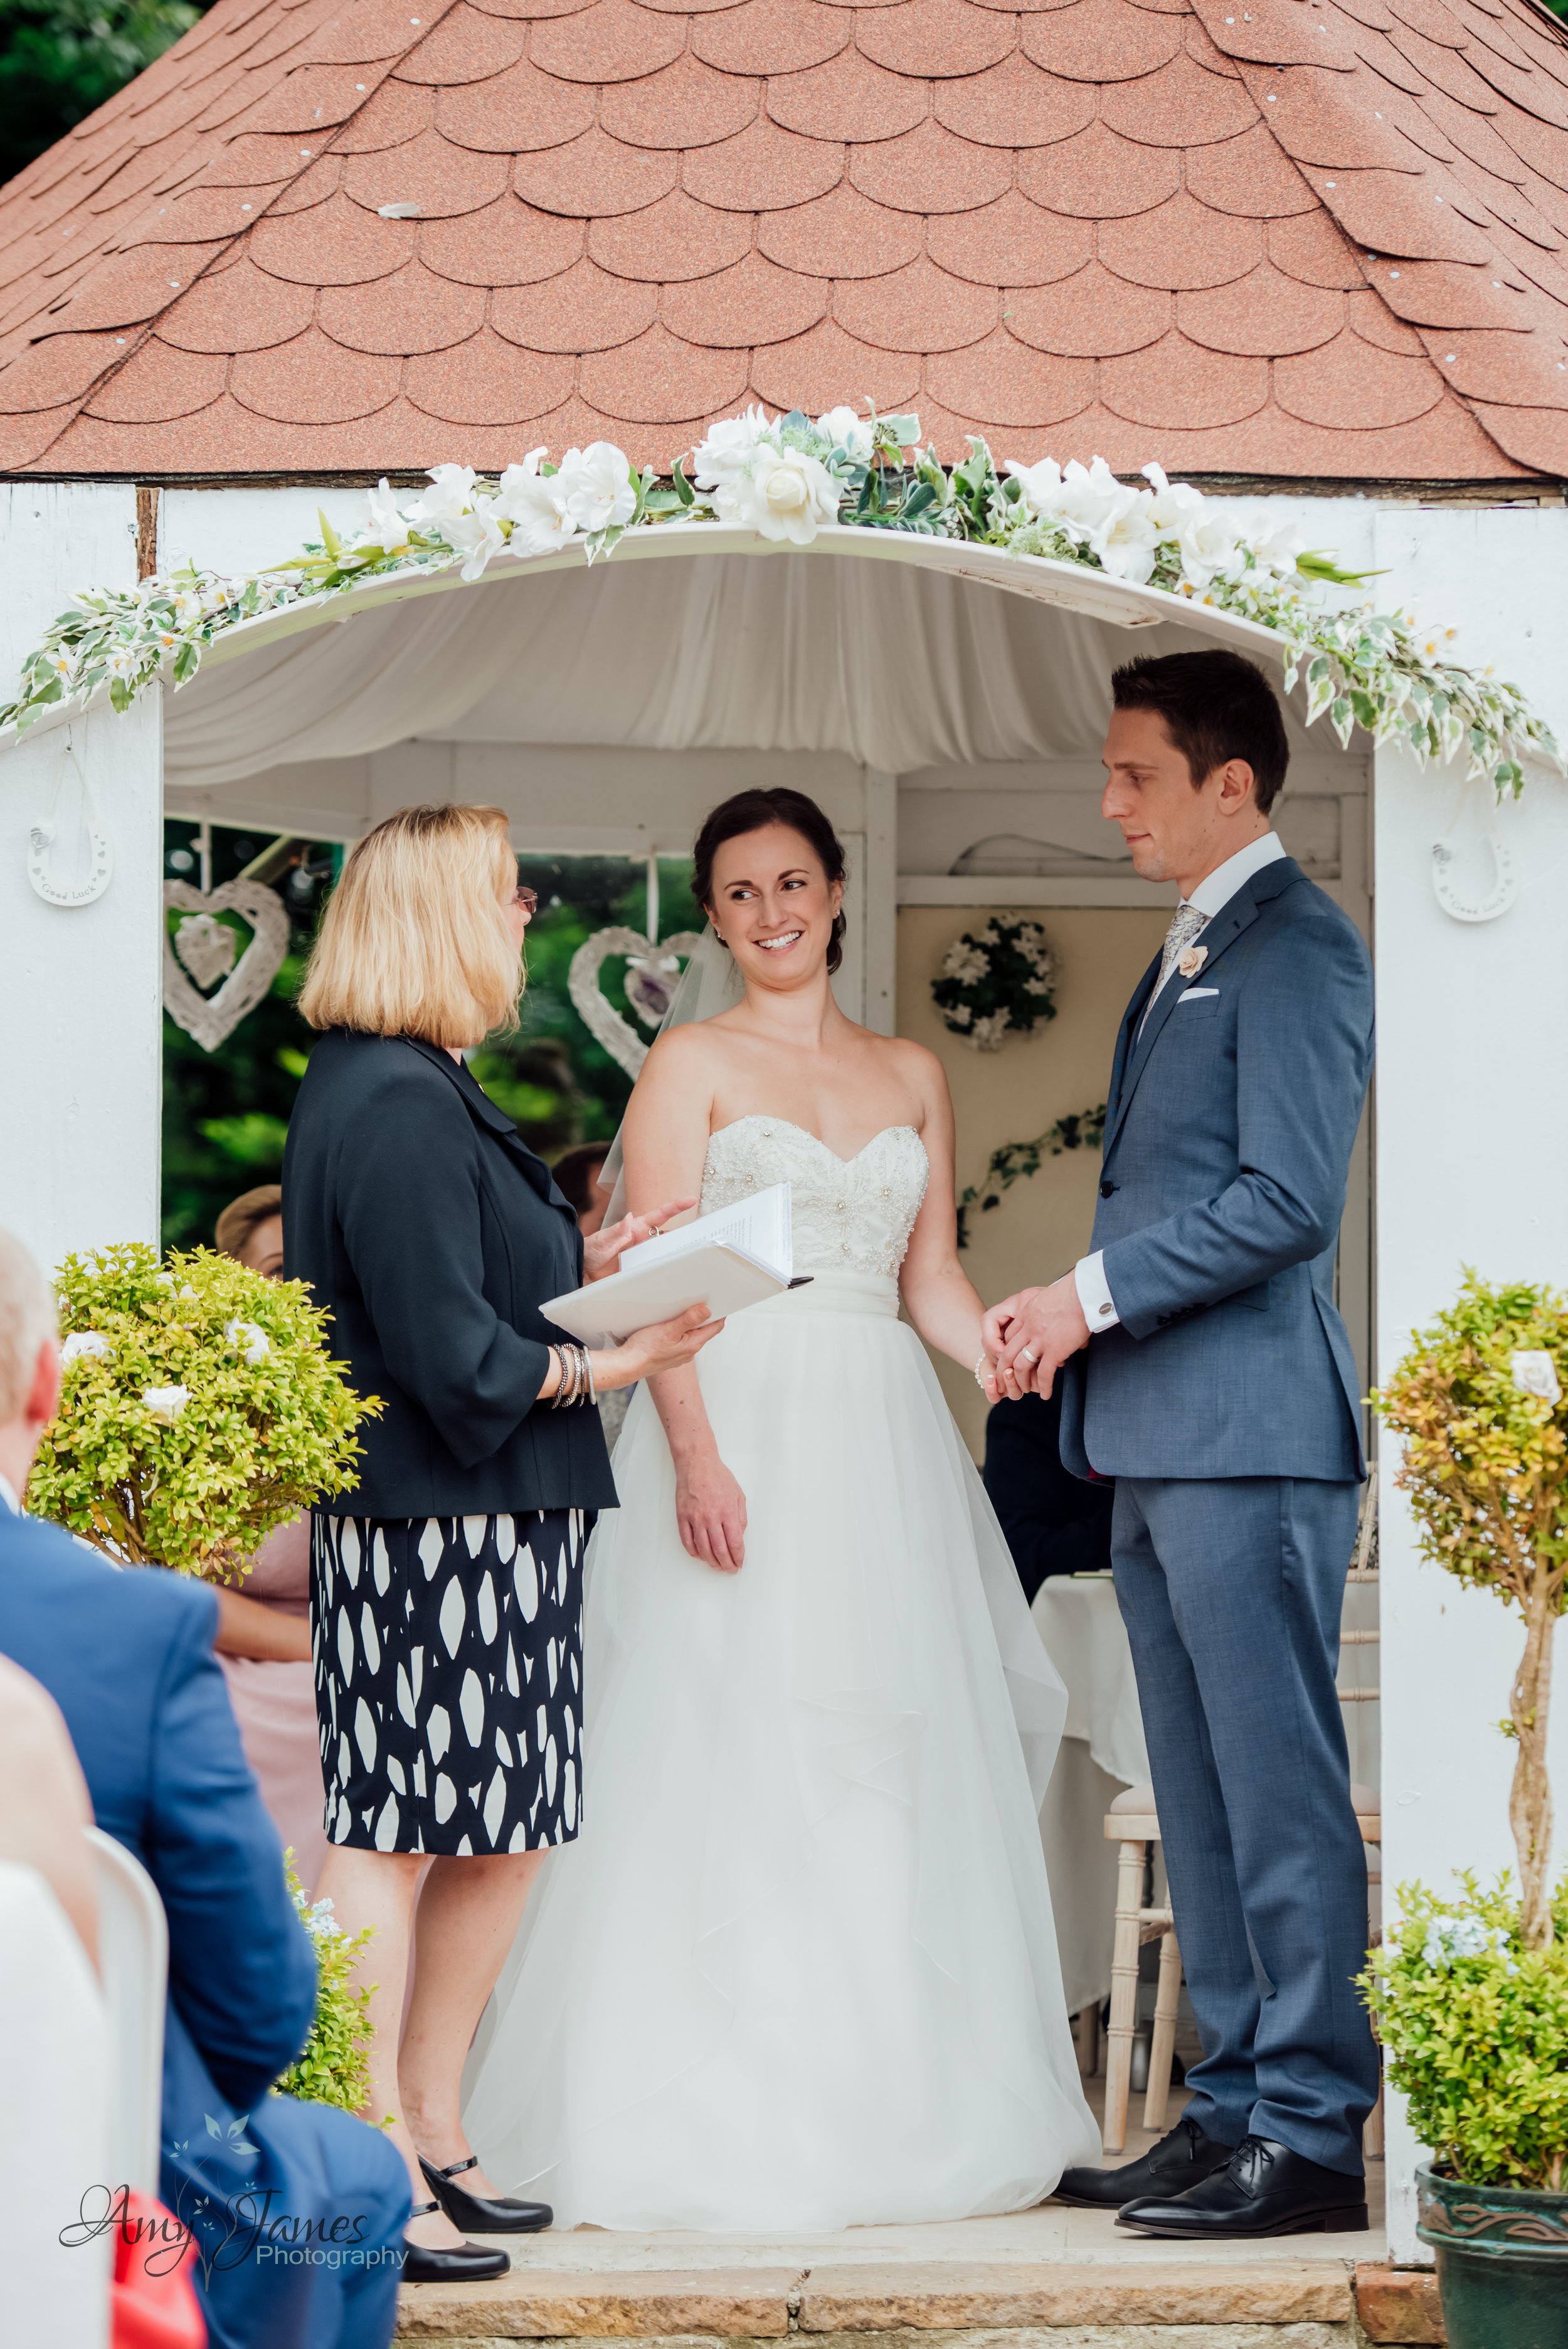 Outdoor garden wedding ceremony photography by Amy James Photography Hampshire Wedding Photographer - Taplins Place Wedding